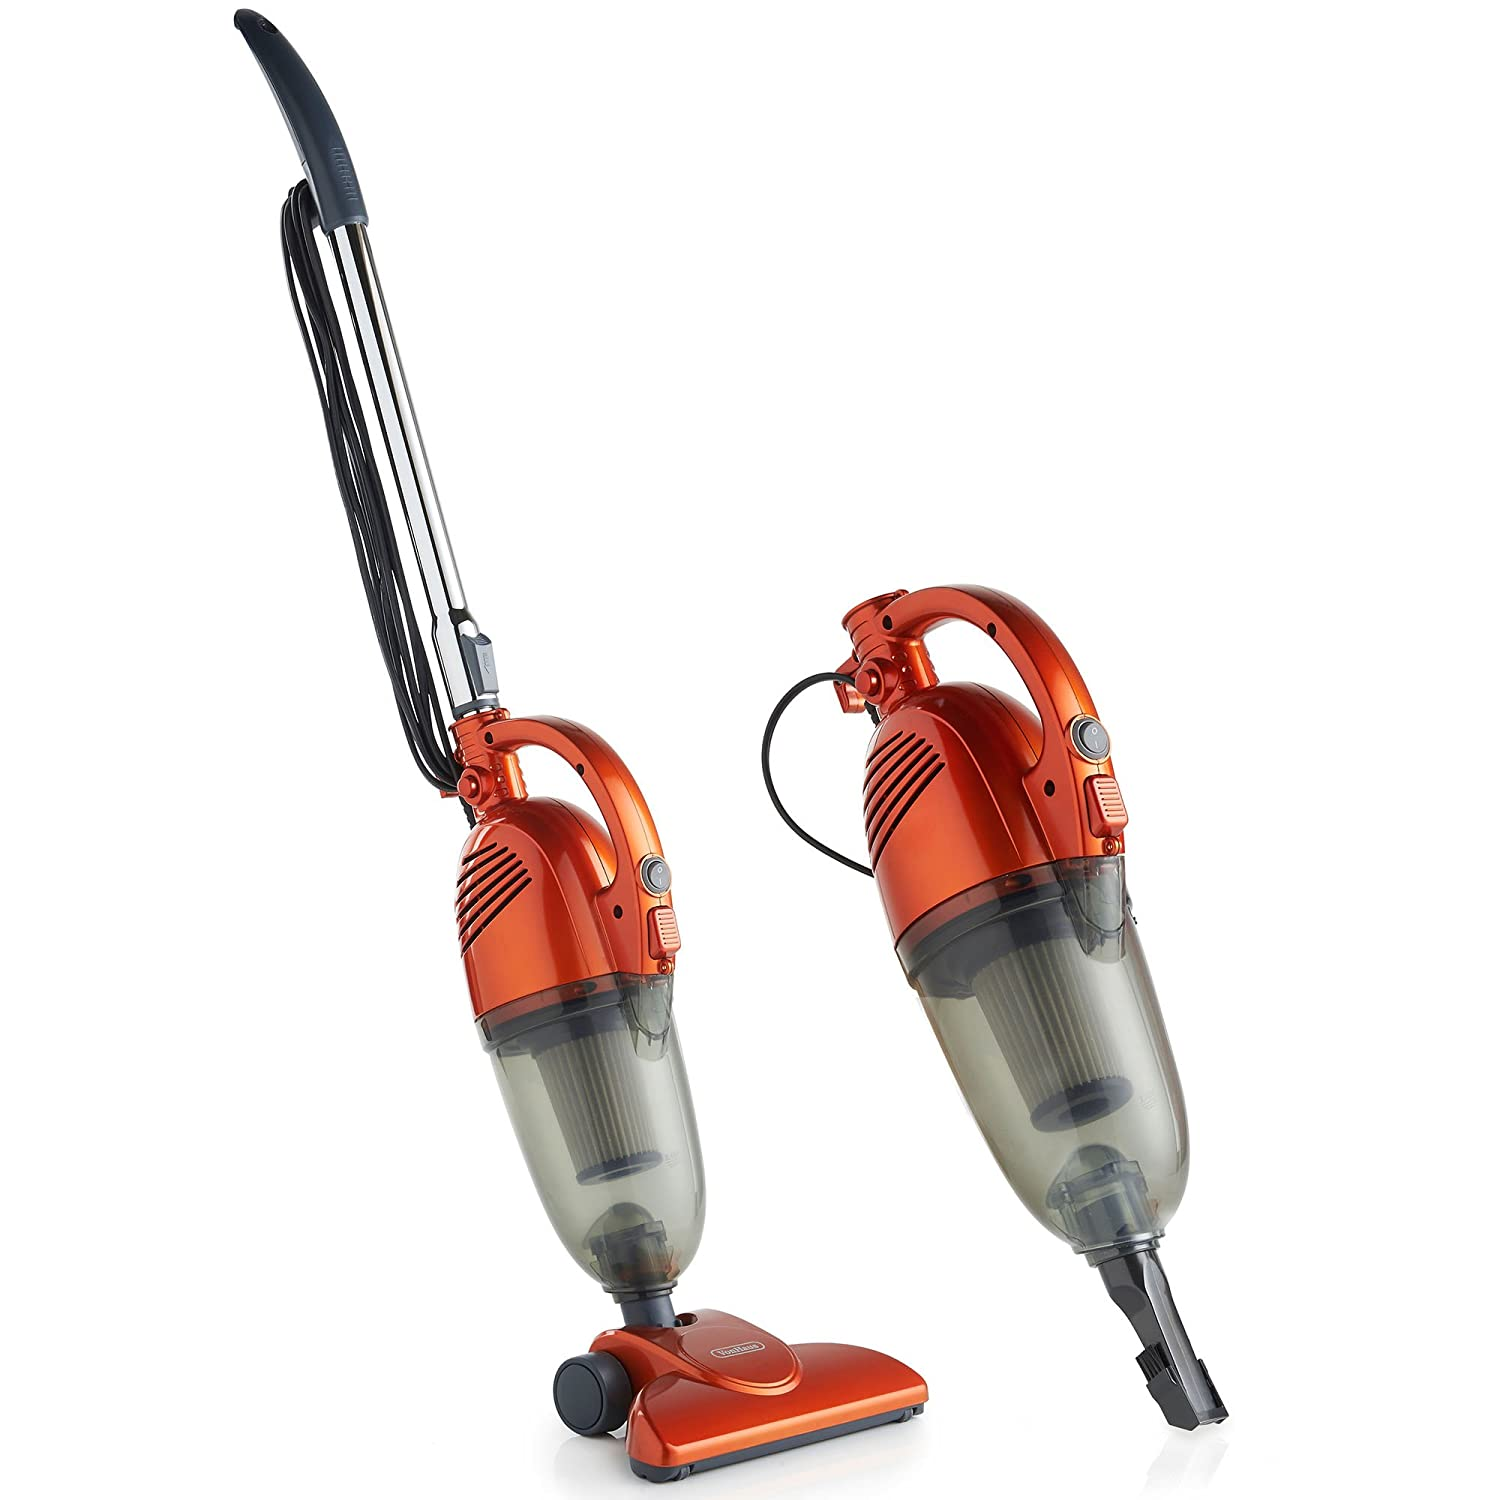 Amazon.com - VonHaus 600W 2 in 1 Corded Lightweight Upright Stick ...